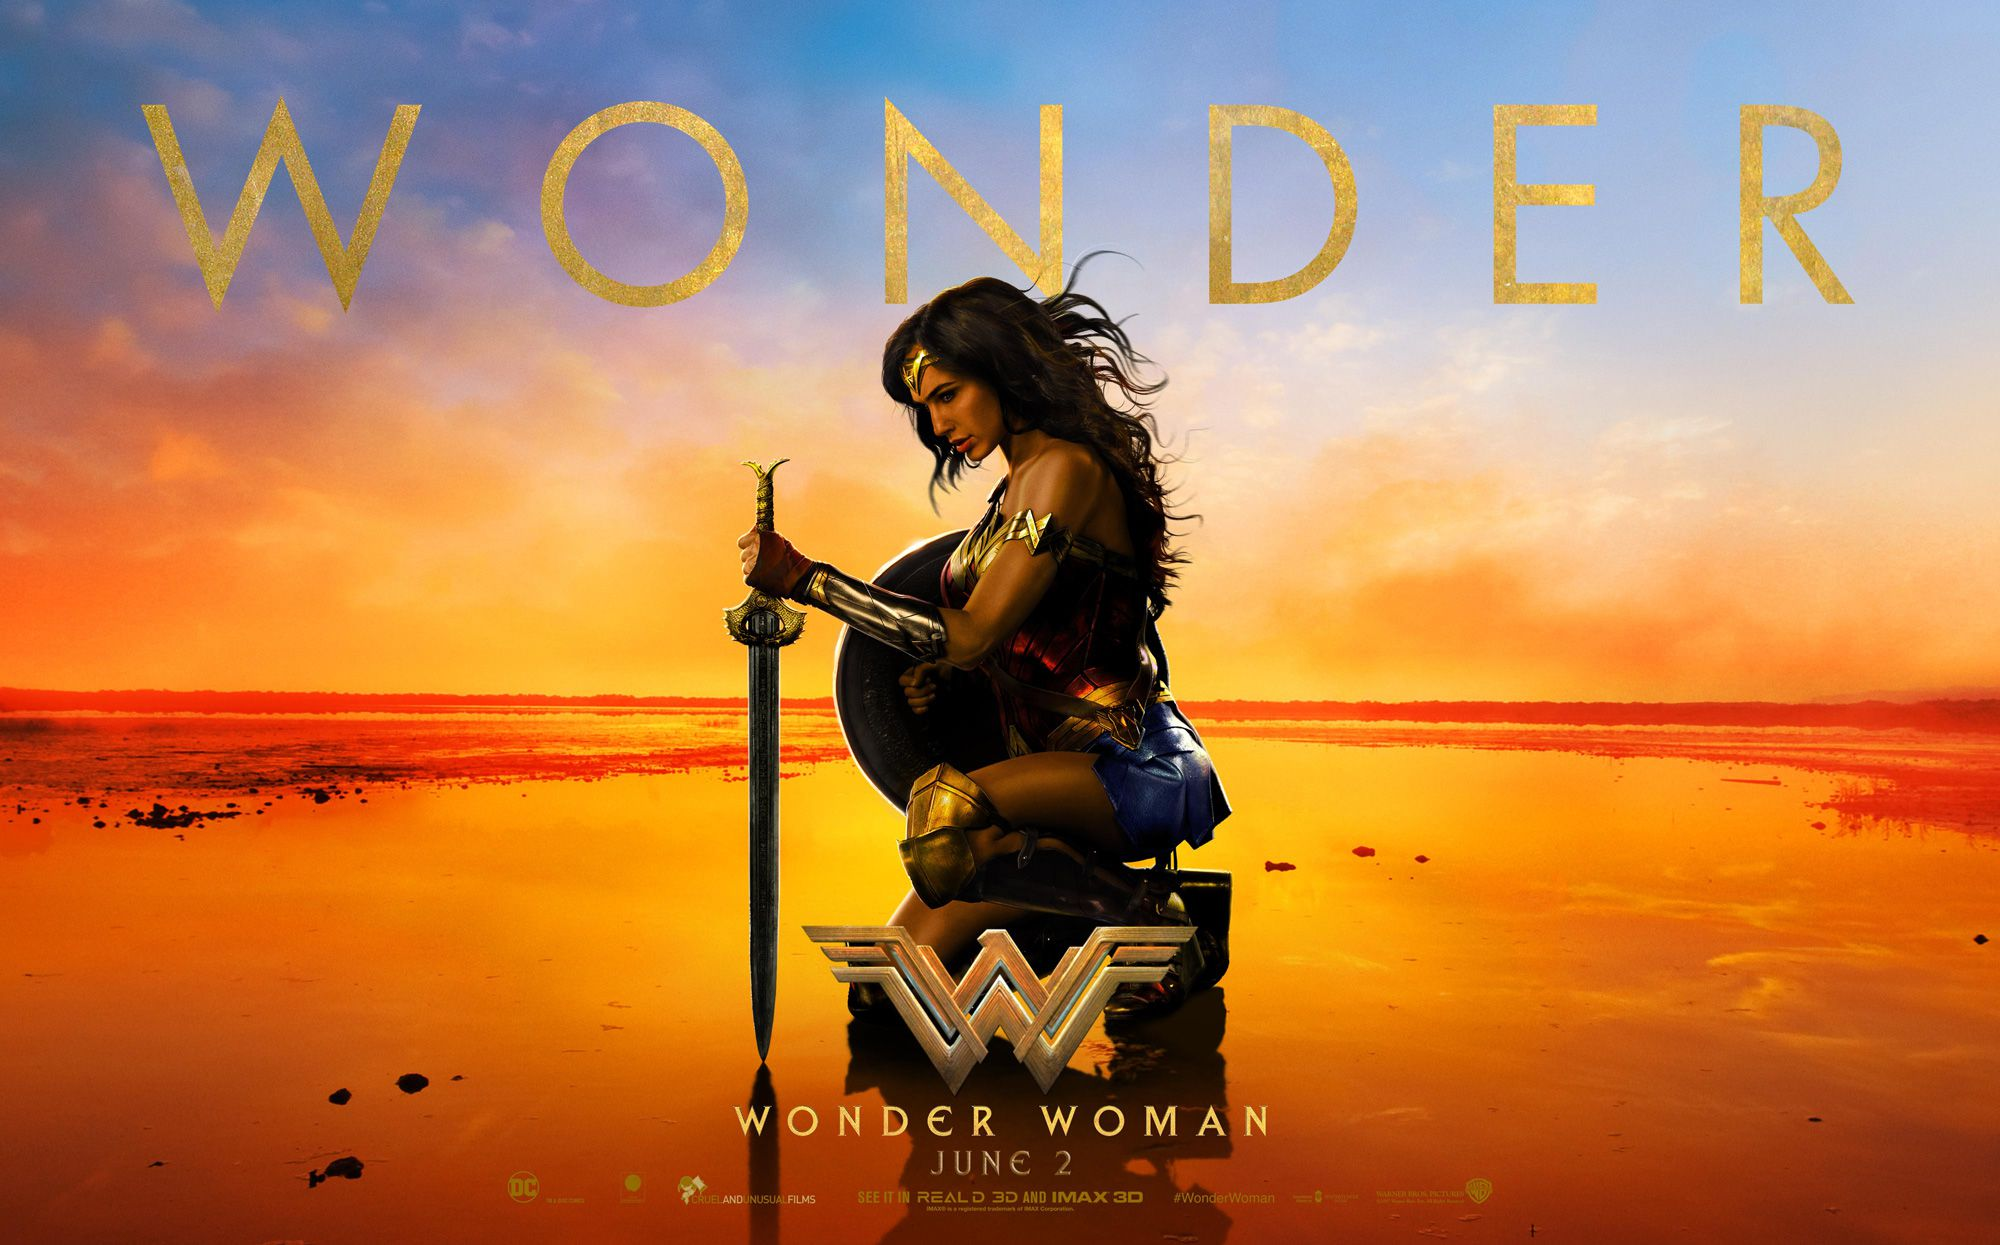 Spada Wonder Woman Wonder Woman E Se Diana Usasse Una Spada Laser Fan Video